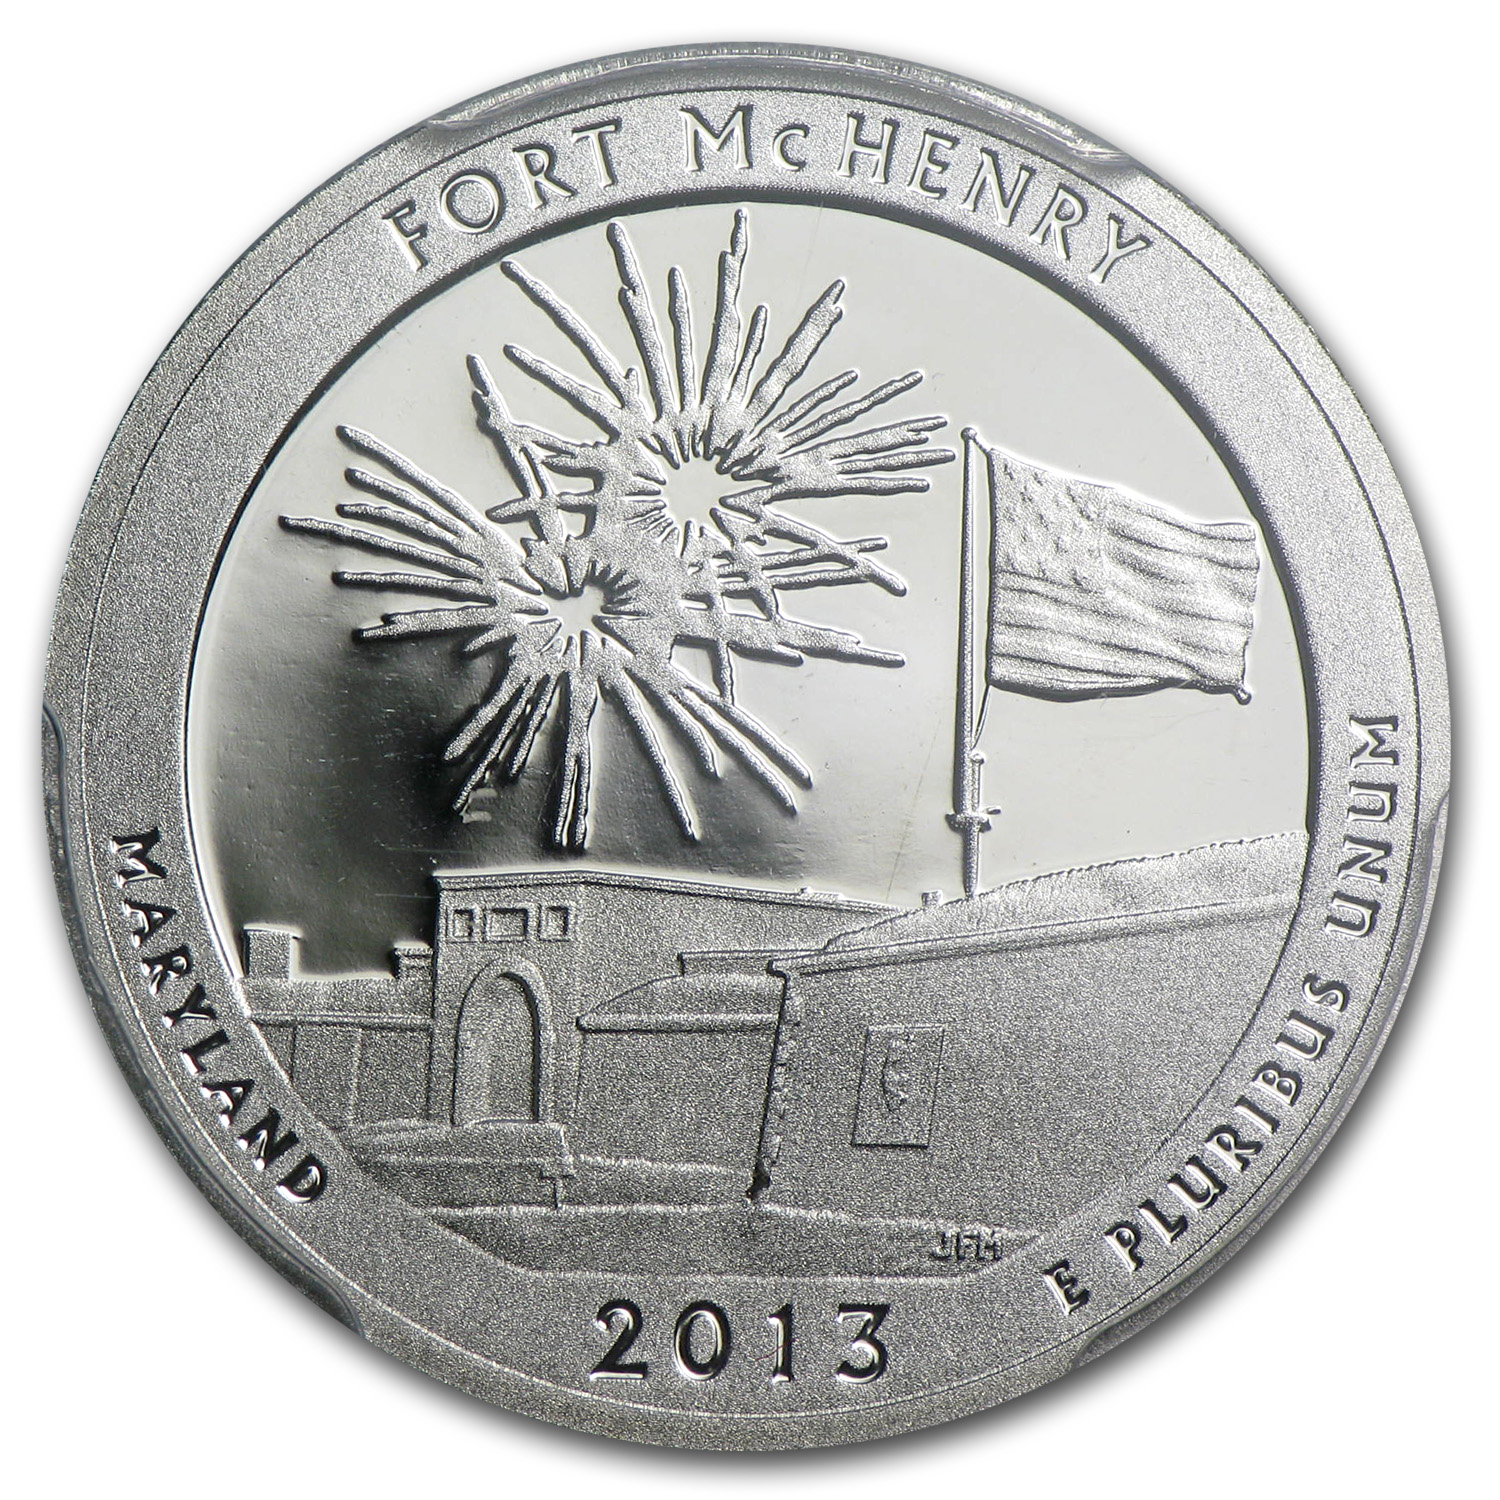 2013 Limited Edition Proof Silver Fort McHenry Quarter PR-70 FS